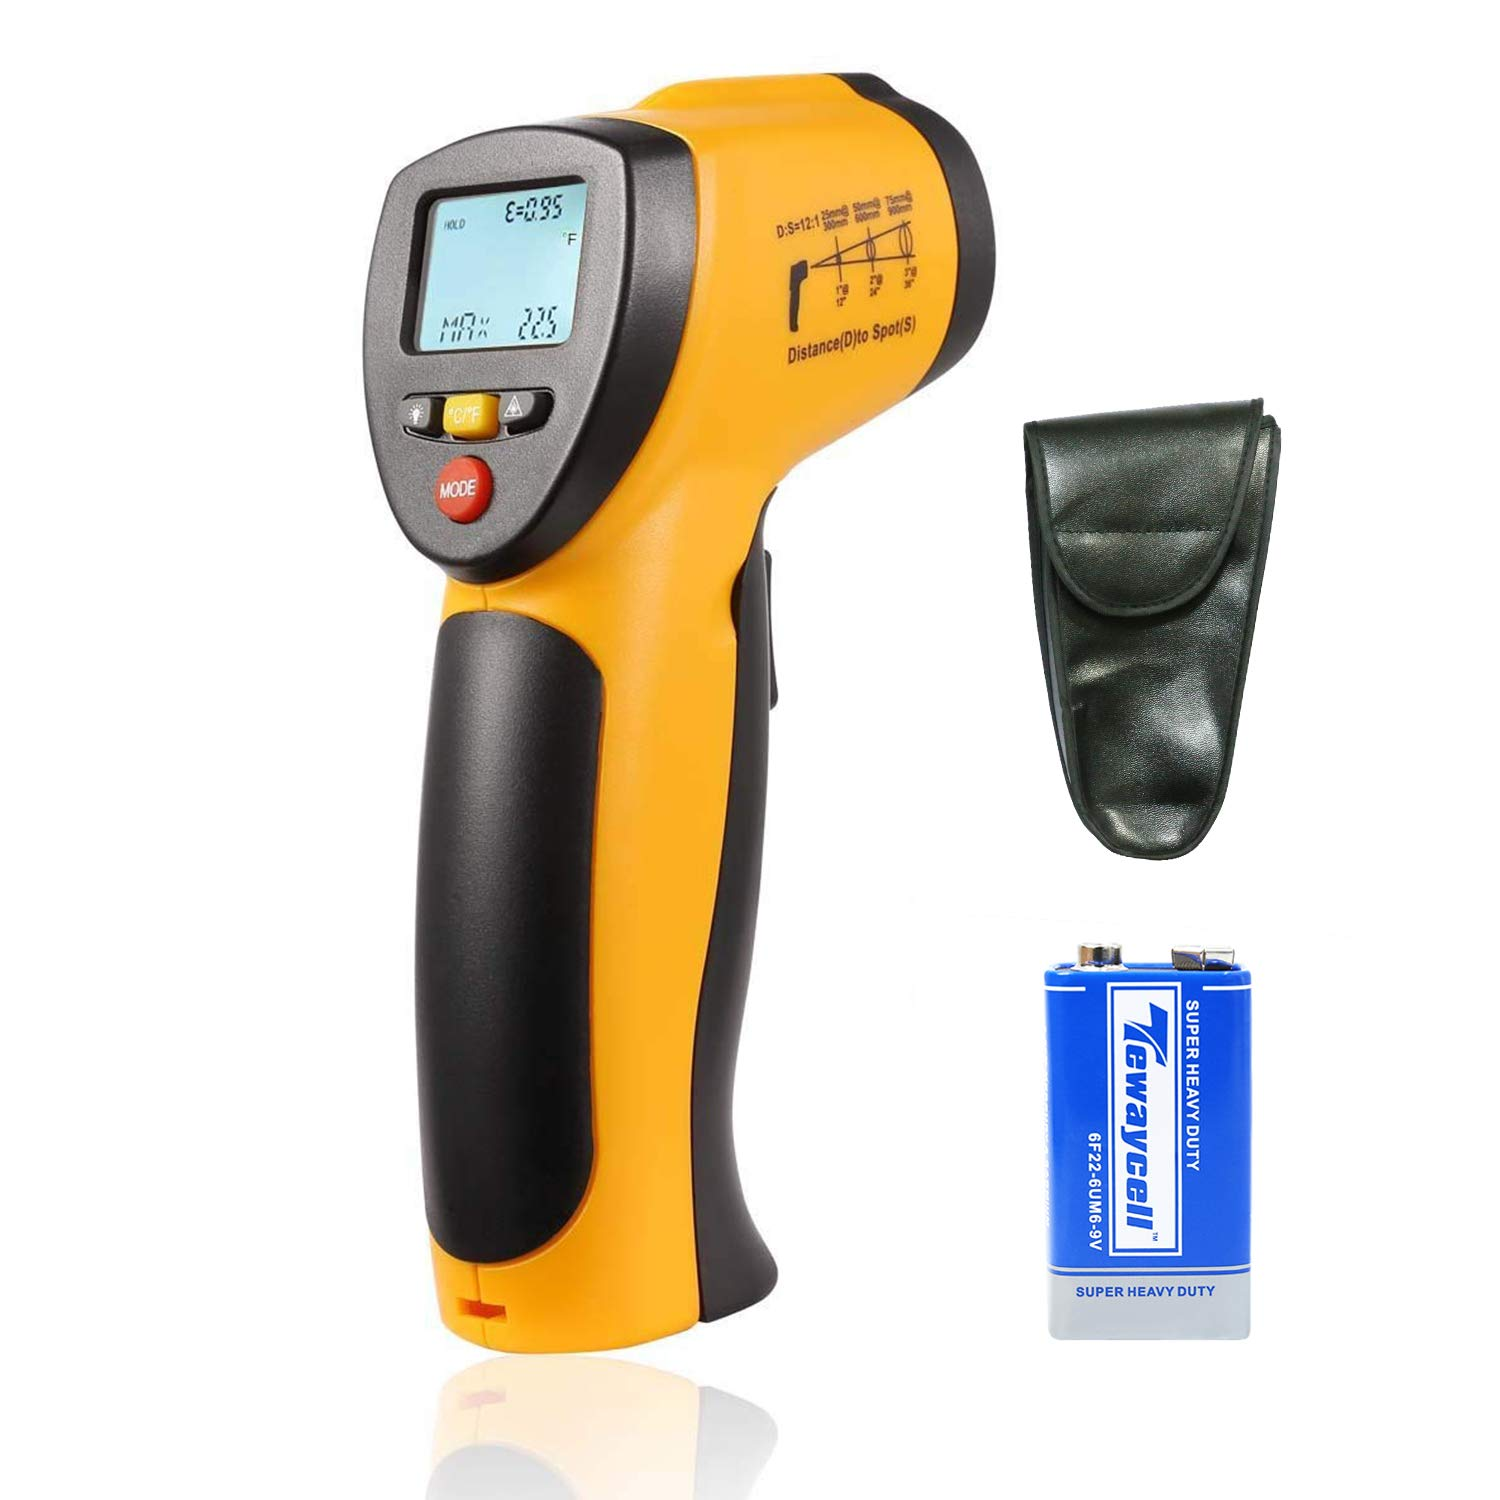 HTI@XT Instrument Digital Infrared IR Thermometer,No-contact Laser Temperature Gun -58℉~716℉ (-50℃~380℃) for Cooking,Auto Maintenance,Home Repairs (9 V Battery Included)